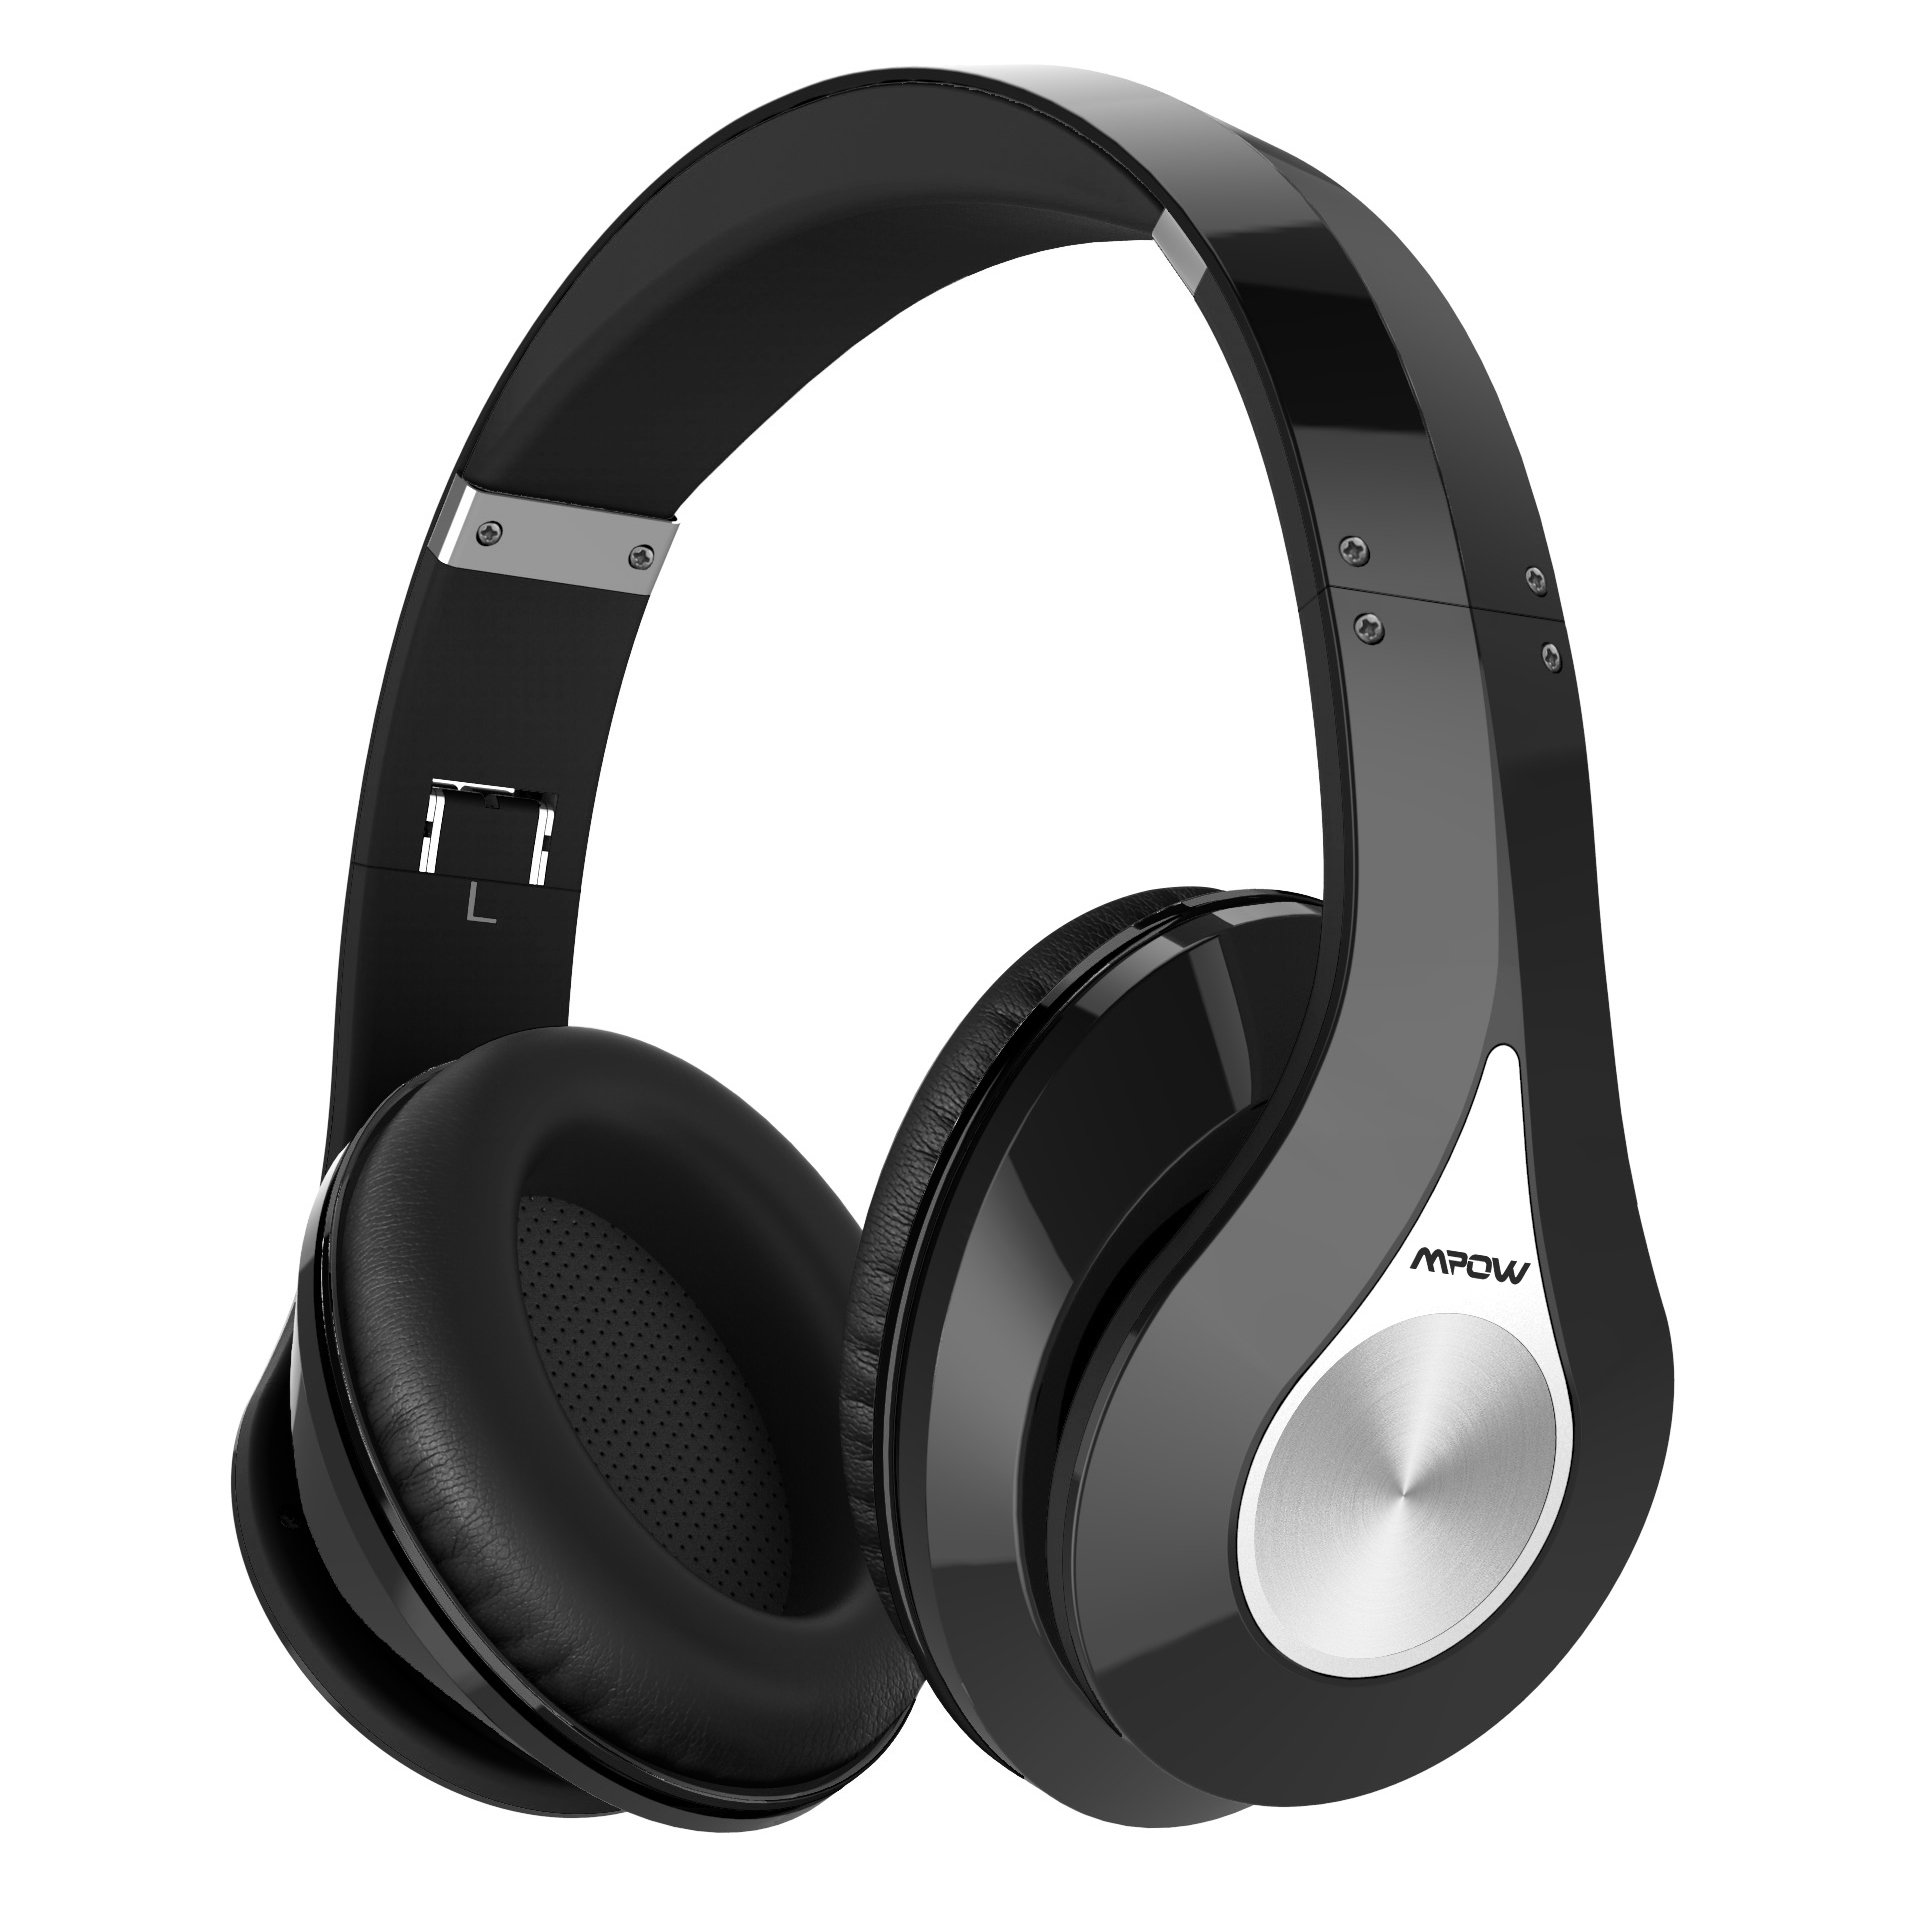 Mpow 059 Bluetooth Headphones Over Ear, Hi-Fi Stereo Wireless Headset, Foldable, Soft Memory-Protein Earmuffs, w/Built-in Mic and Wired Mode for PC/Cell Phones/TV by Mpow